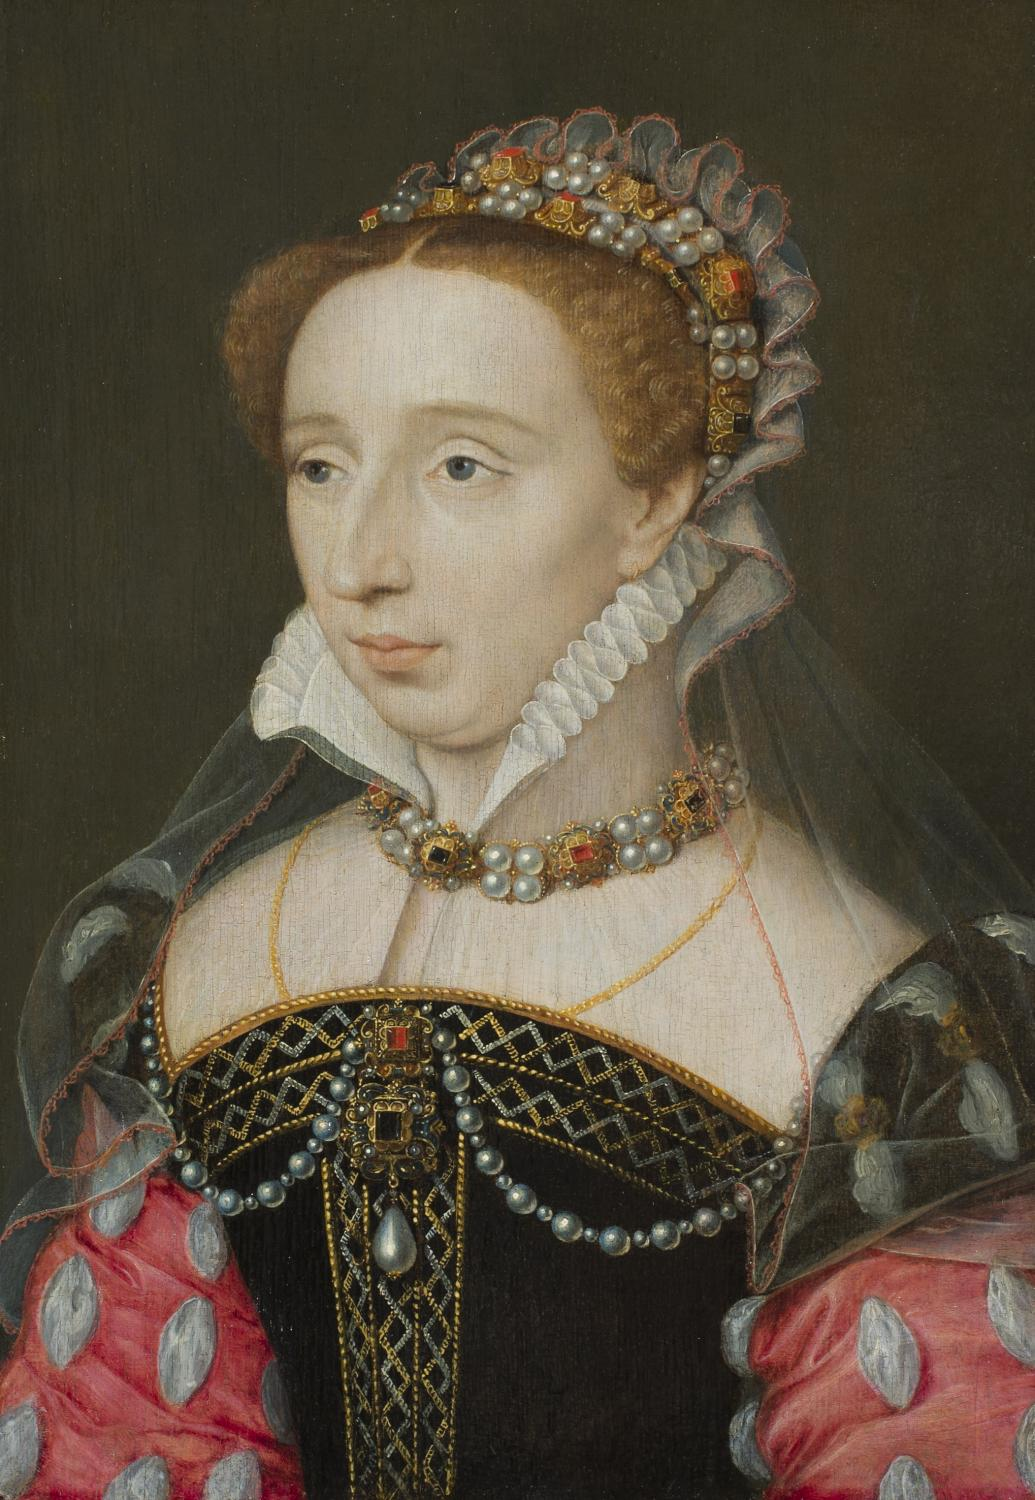 François Clouet (French, ca. 1516–1572), Portrait of Diane of France, Daughter of King Henri II, ca. 1555. Oil on panel. Gift of Merle J. and Emily N. Trees 1941-1-1